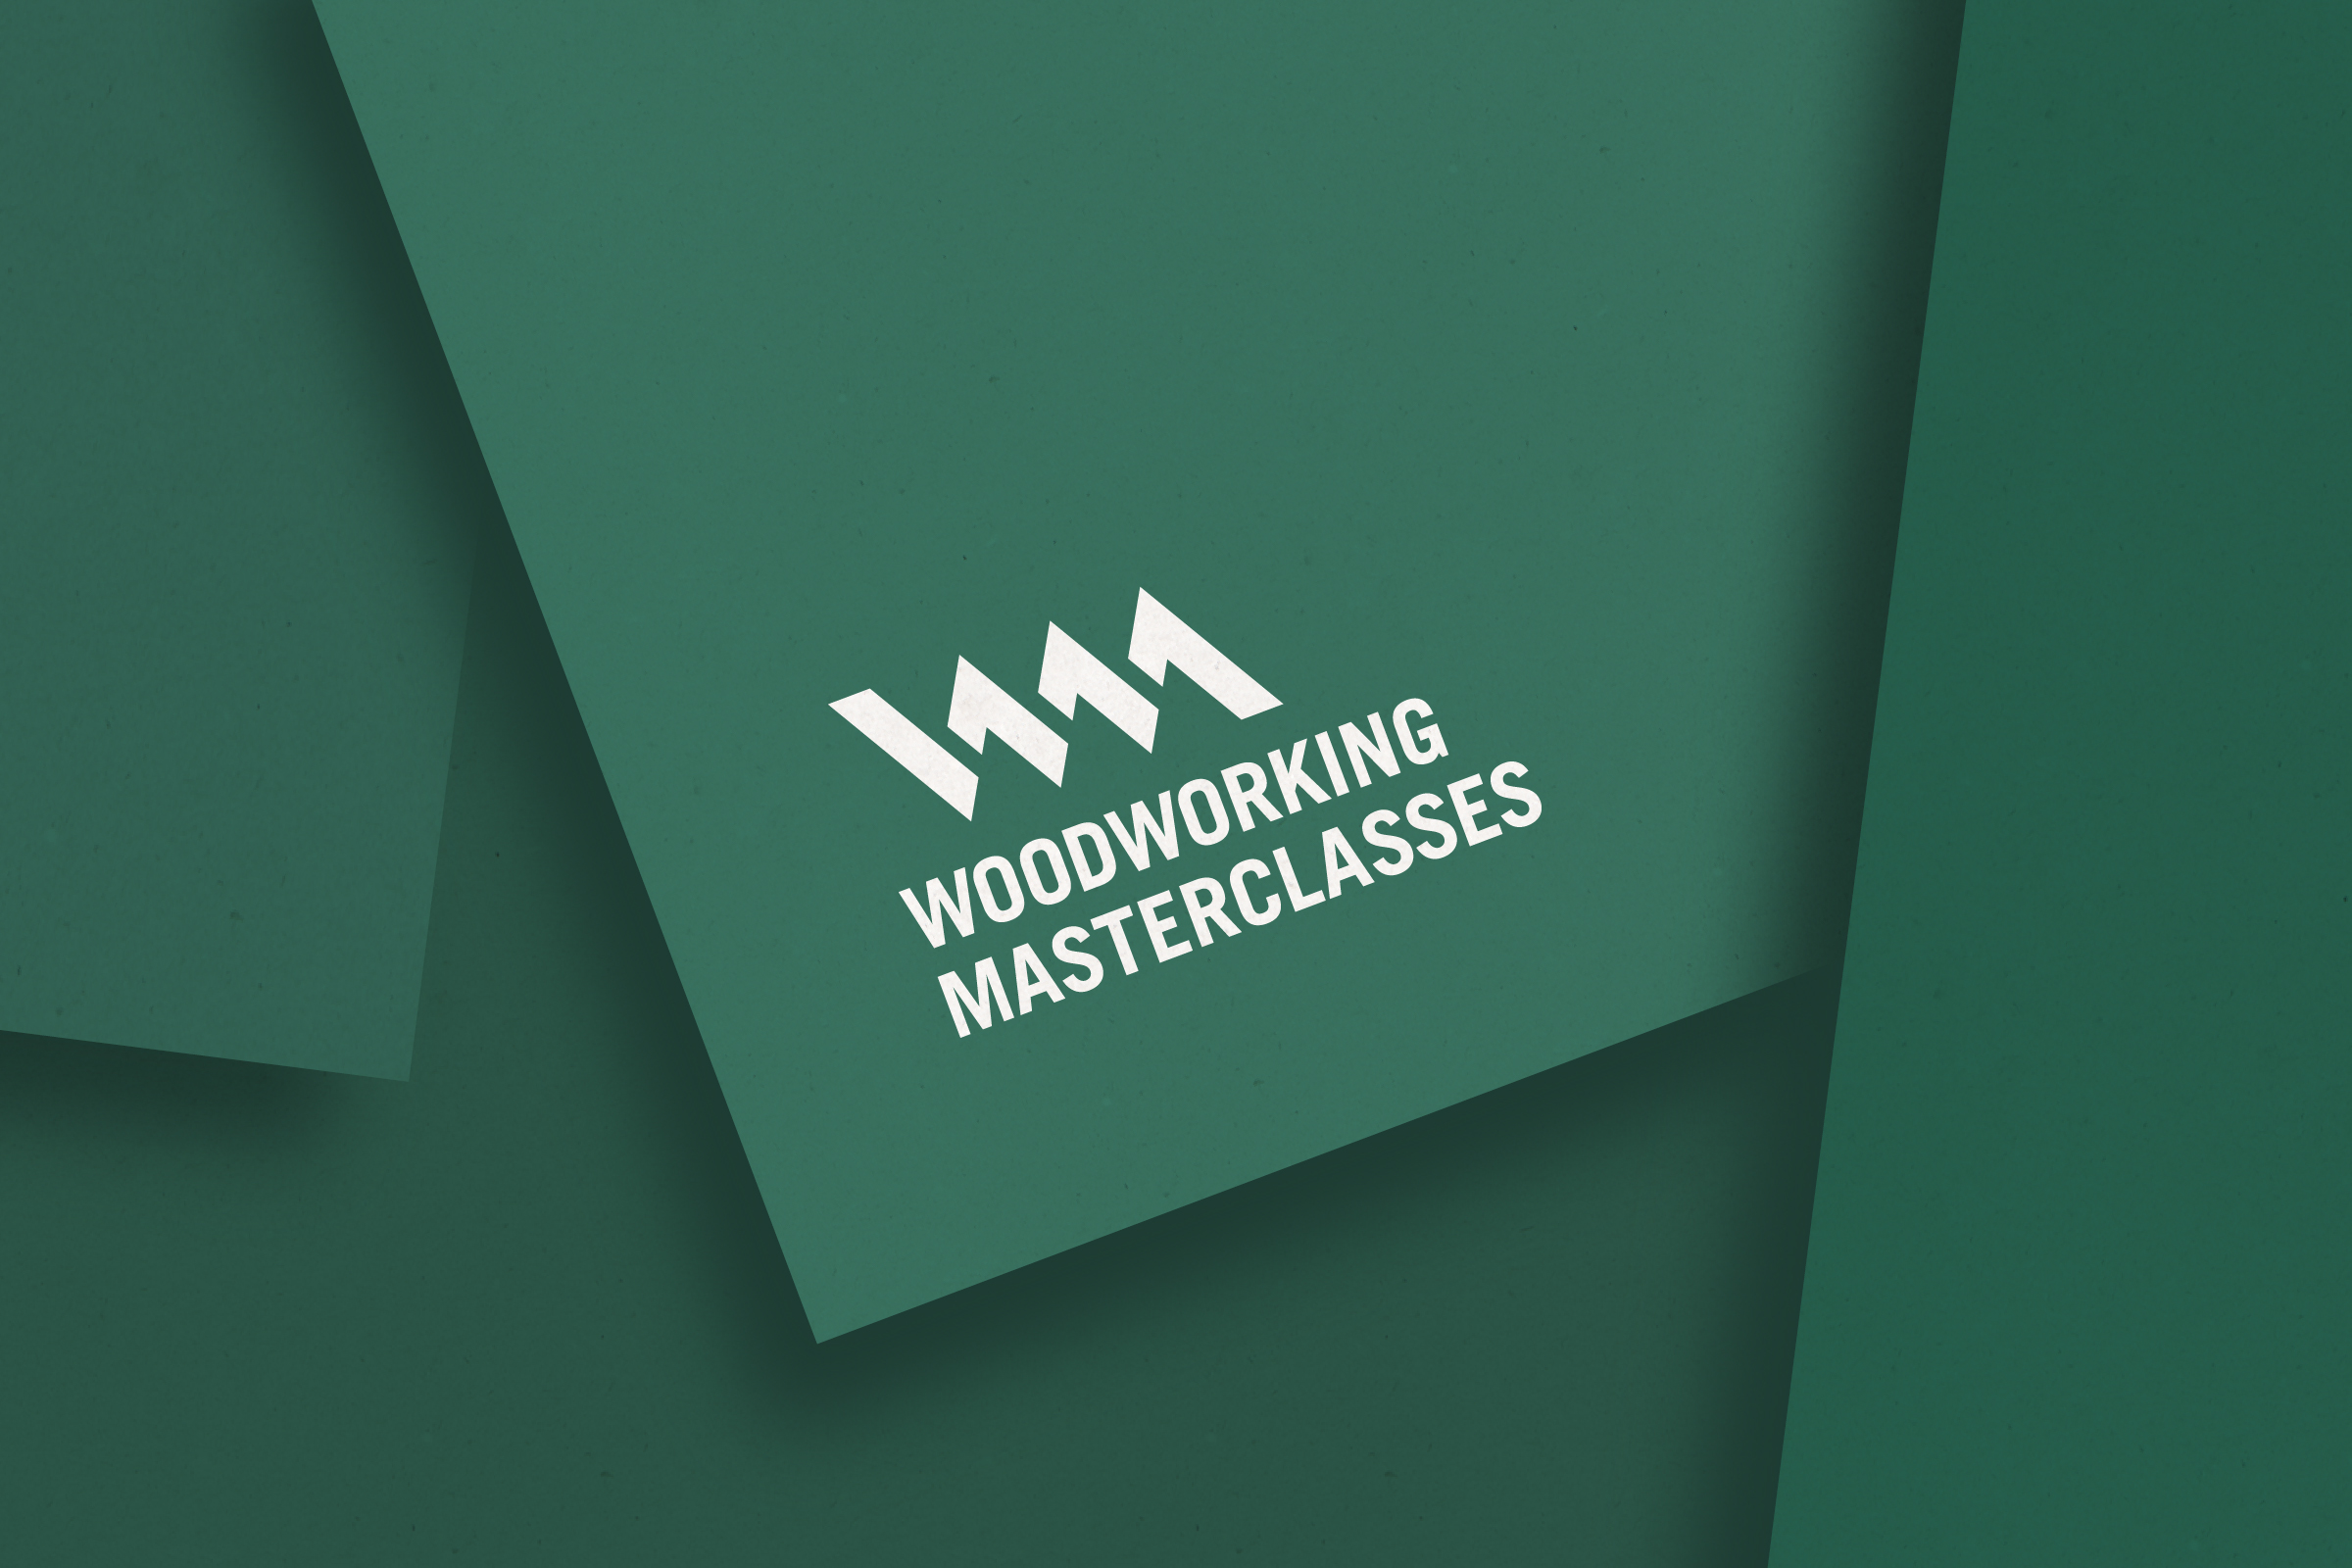 Close of up Woodworking Masterclasses logo